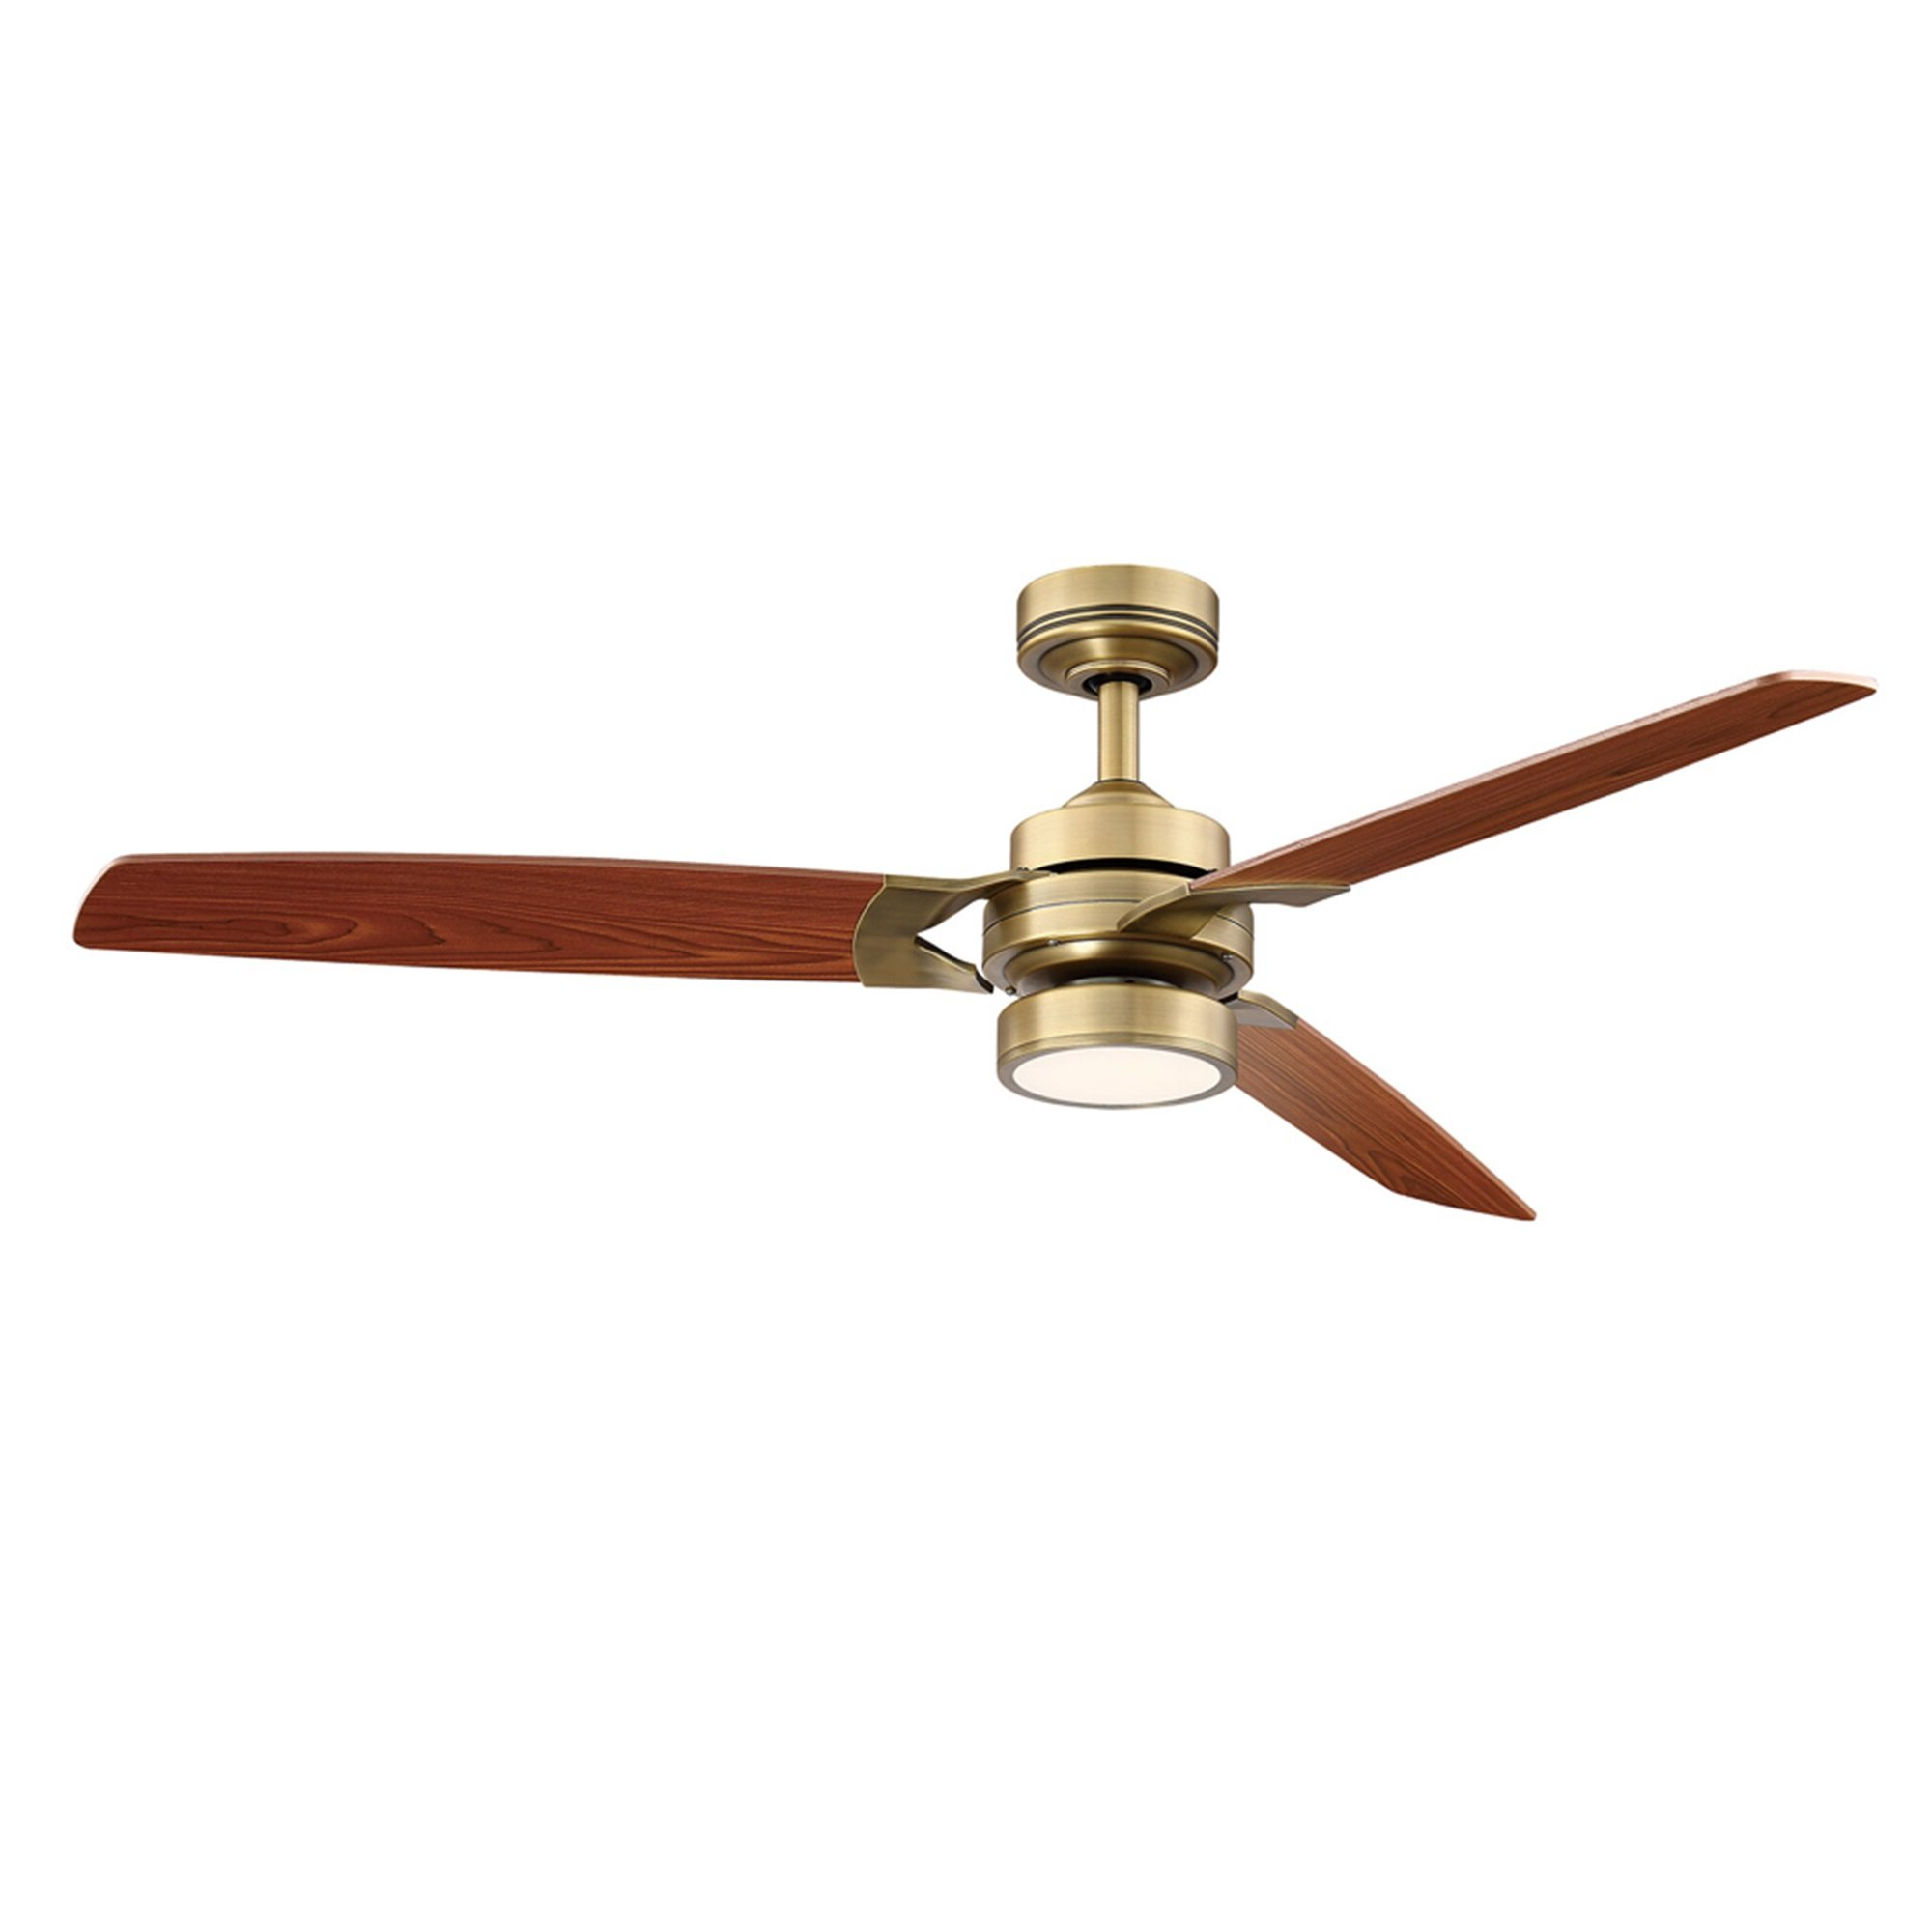 Gaye 3 Blade Led Ceiling Fan With Remote, Light Kit Included Inside Well Known Zonix 3 Blade Ceiling Fans (View 8 of 20)